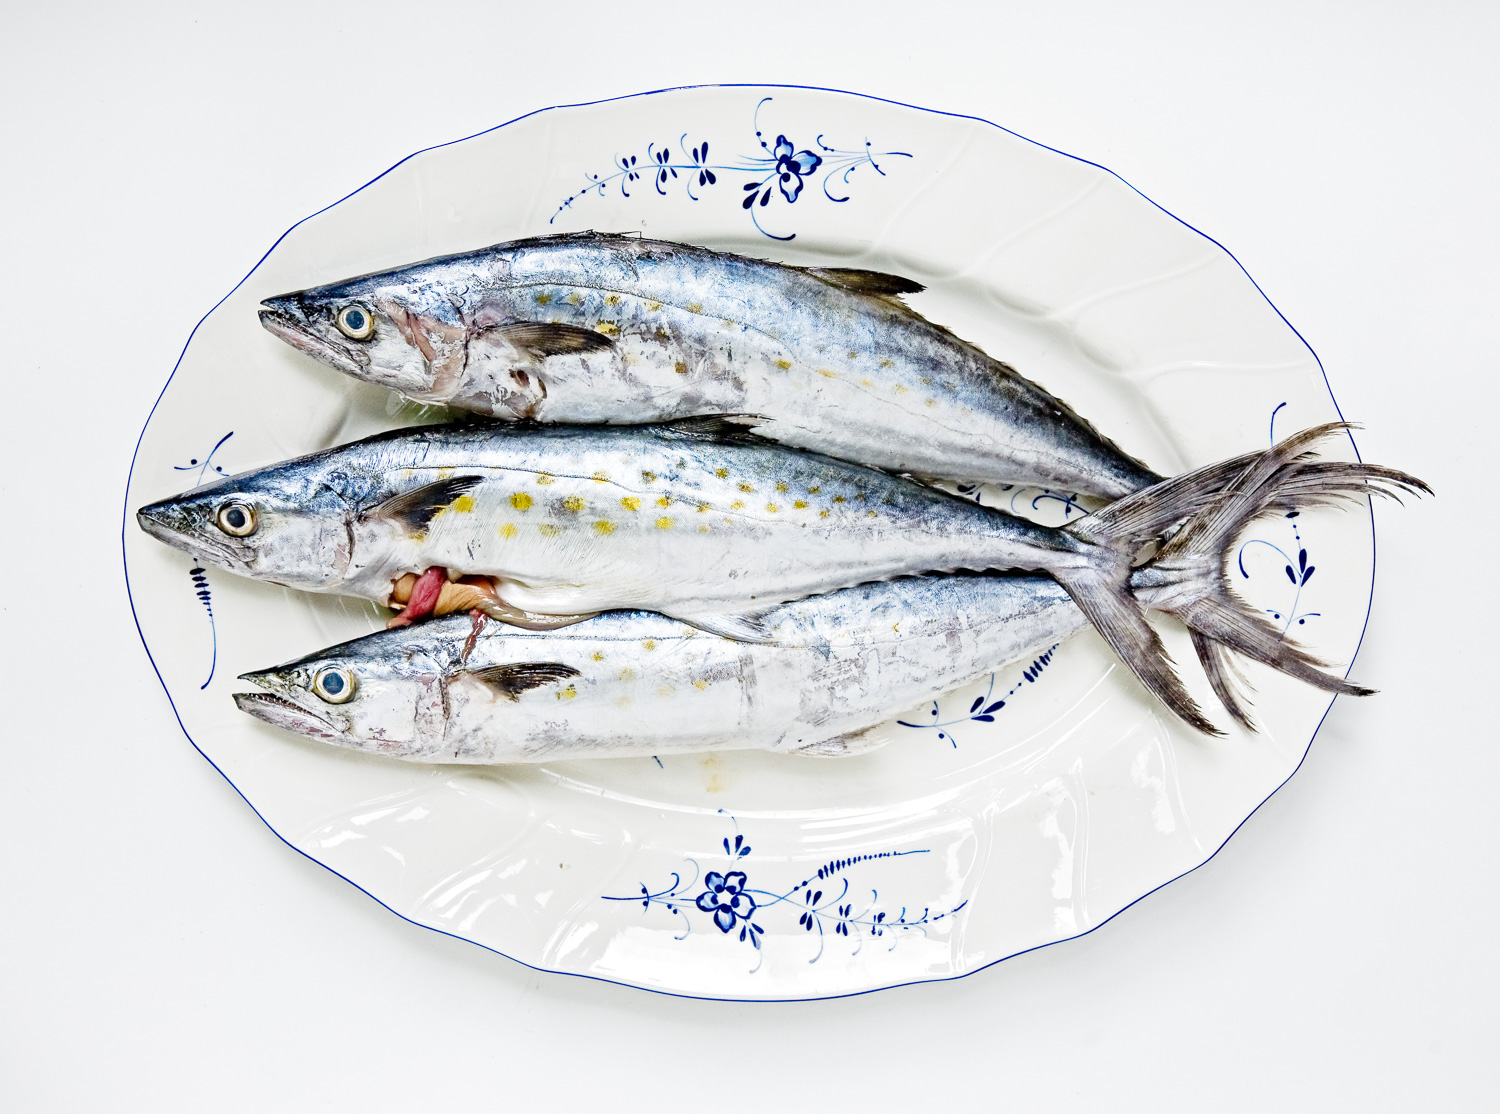 Three Spanish Mackerel arranged together for the photograph like this.